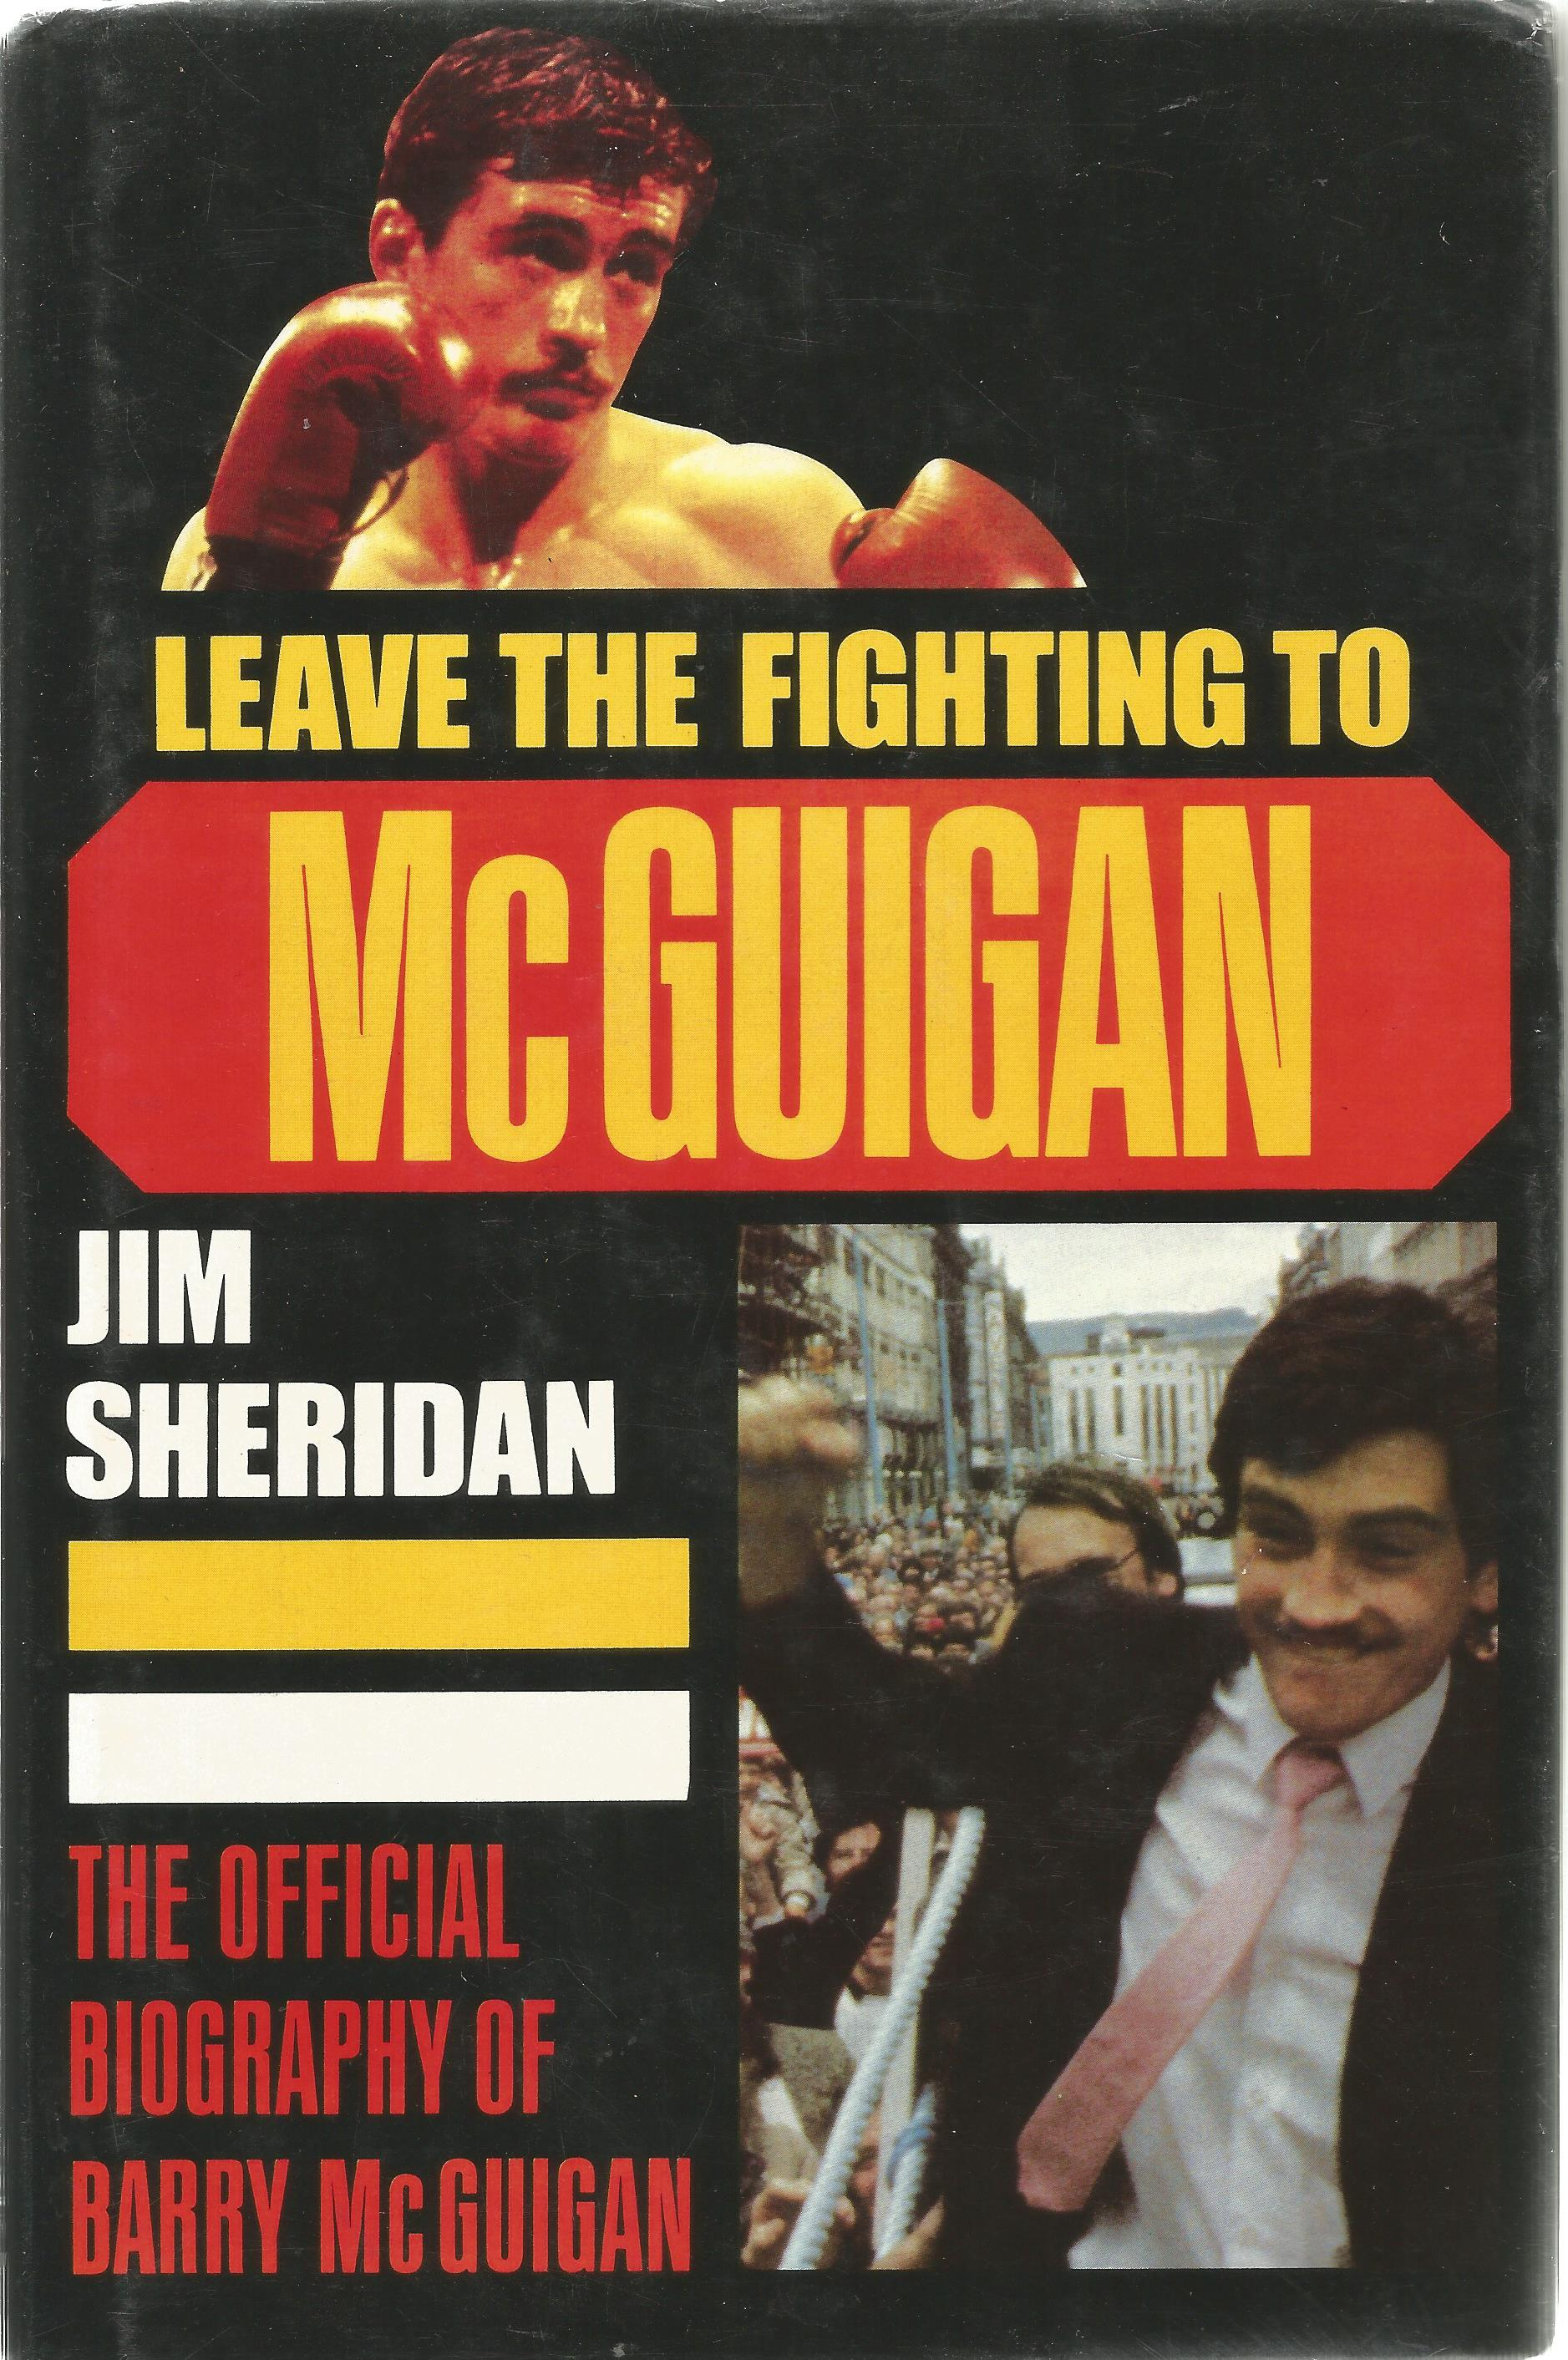 Jim Sheridan Hardback Book Leave the Fighting to McGuigan 1985 signed opposite the Title Page by